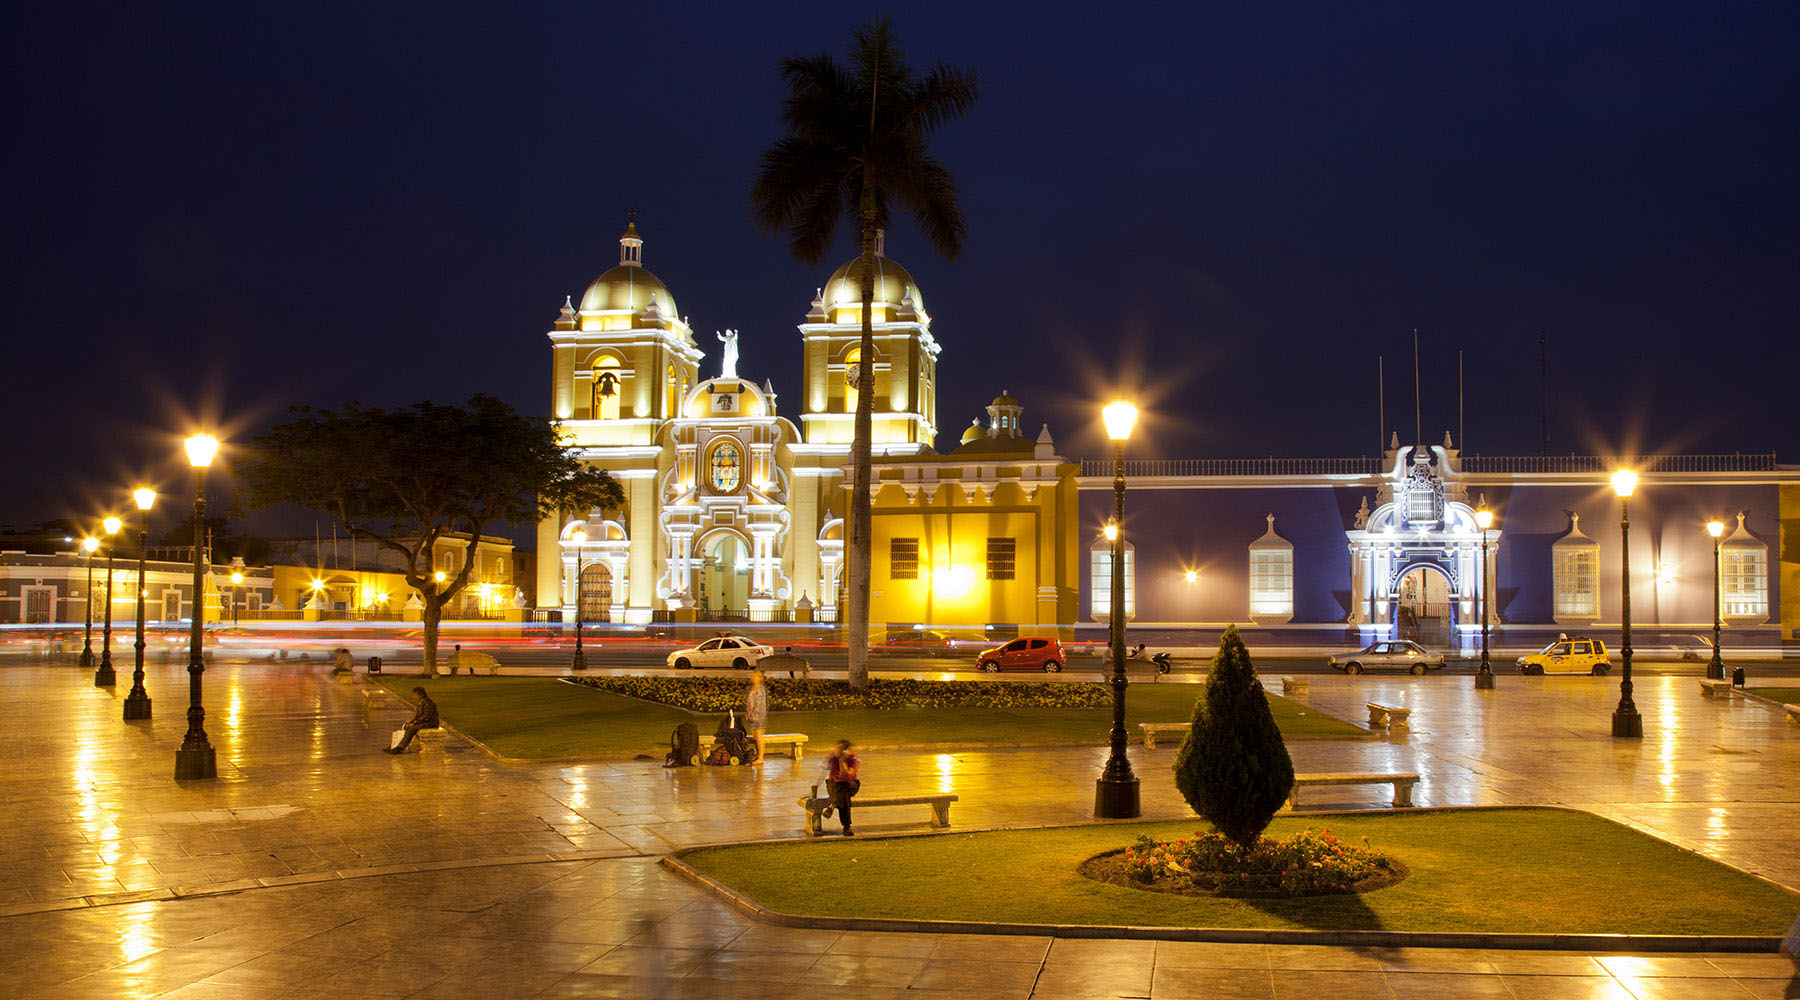 temple near street lamp during night time in salaverry peru